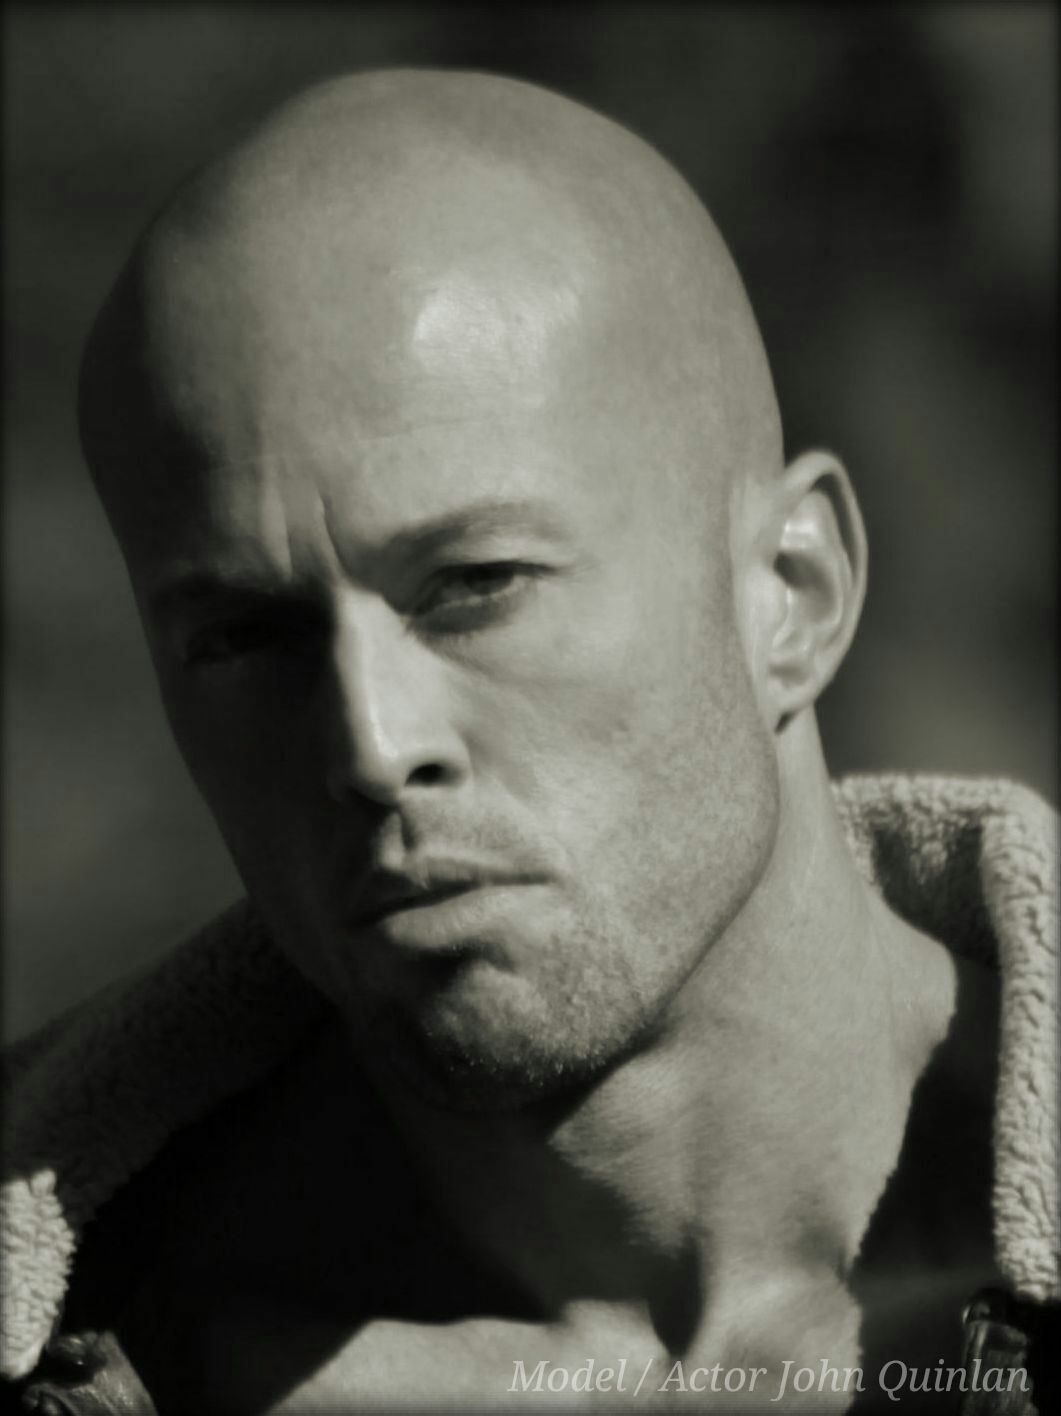 Model & Actor John Quinlan Head Shot in Calvin Klein #JohnQuinlan